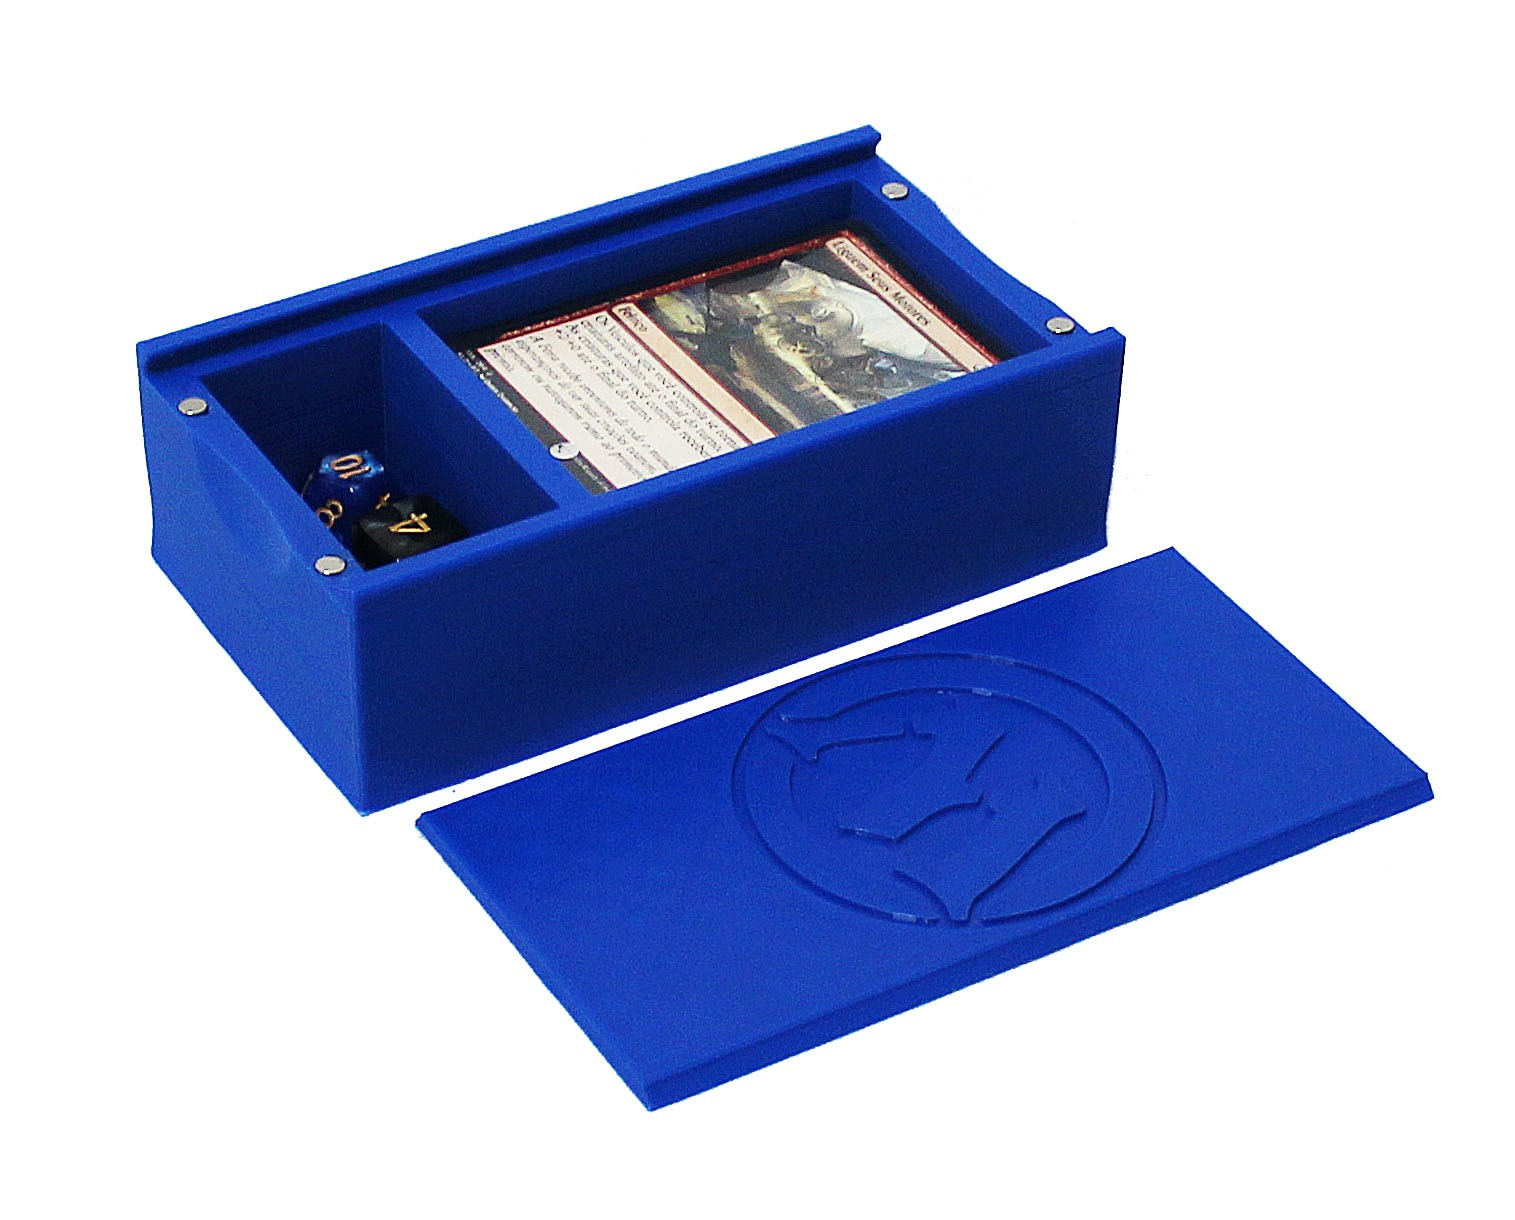 Deckbox Magic Caixa para baralho card game